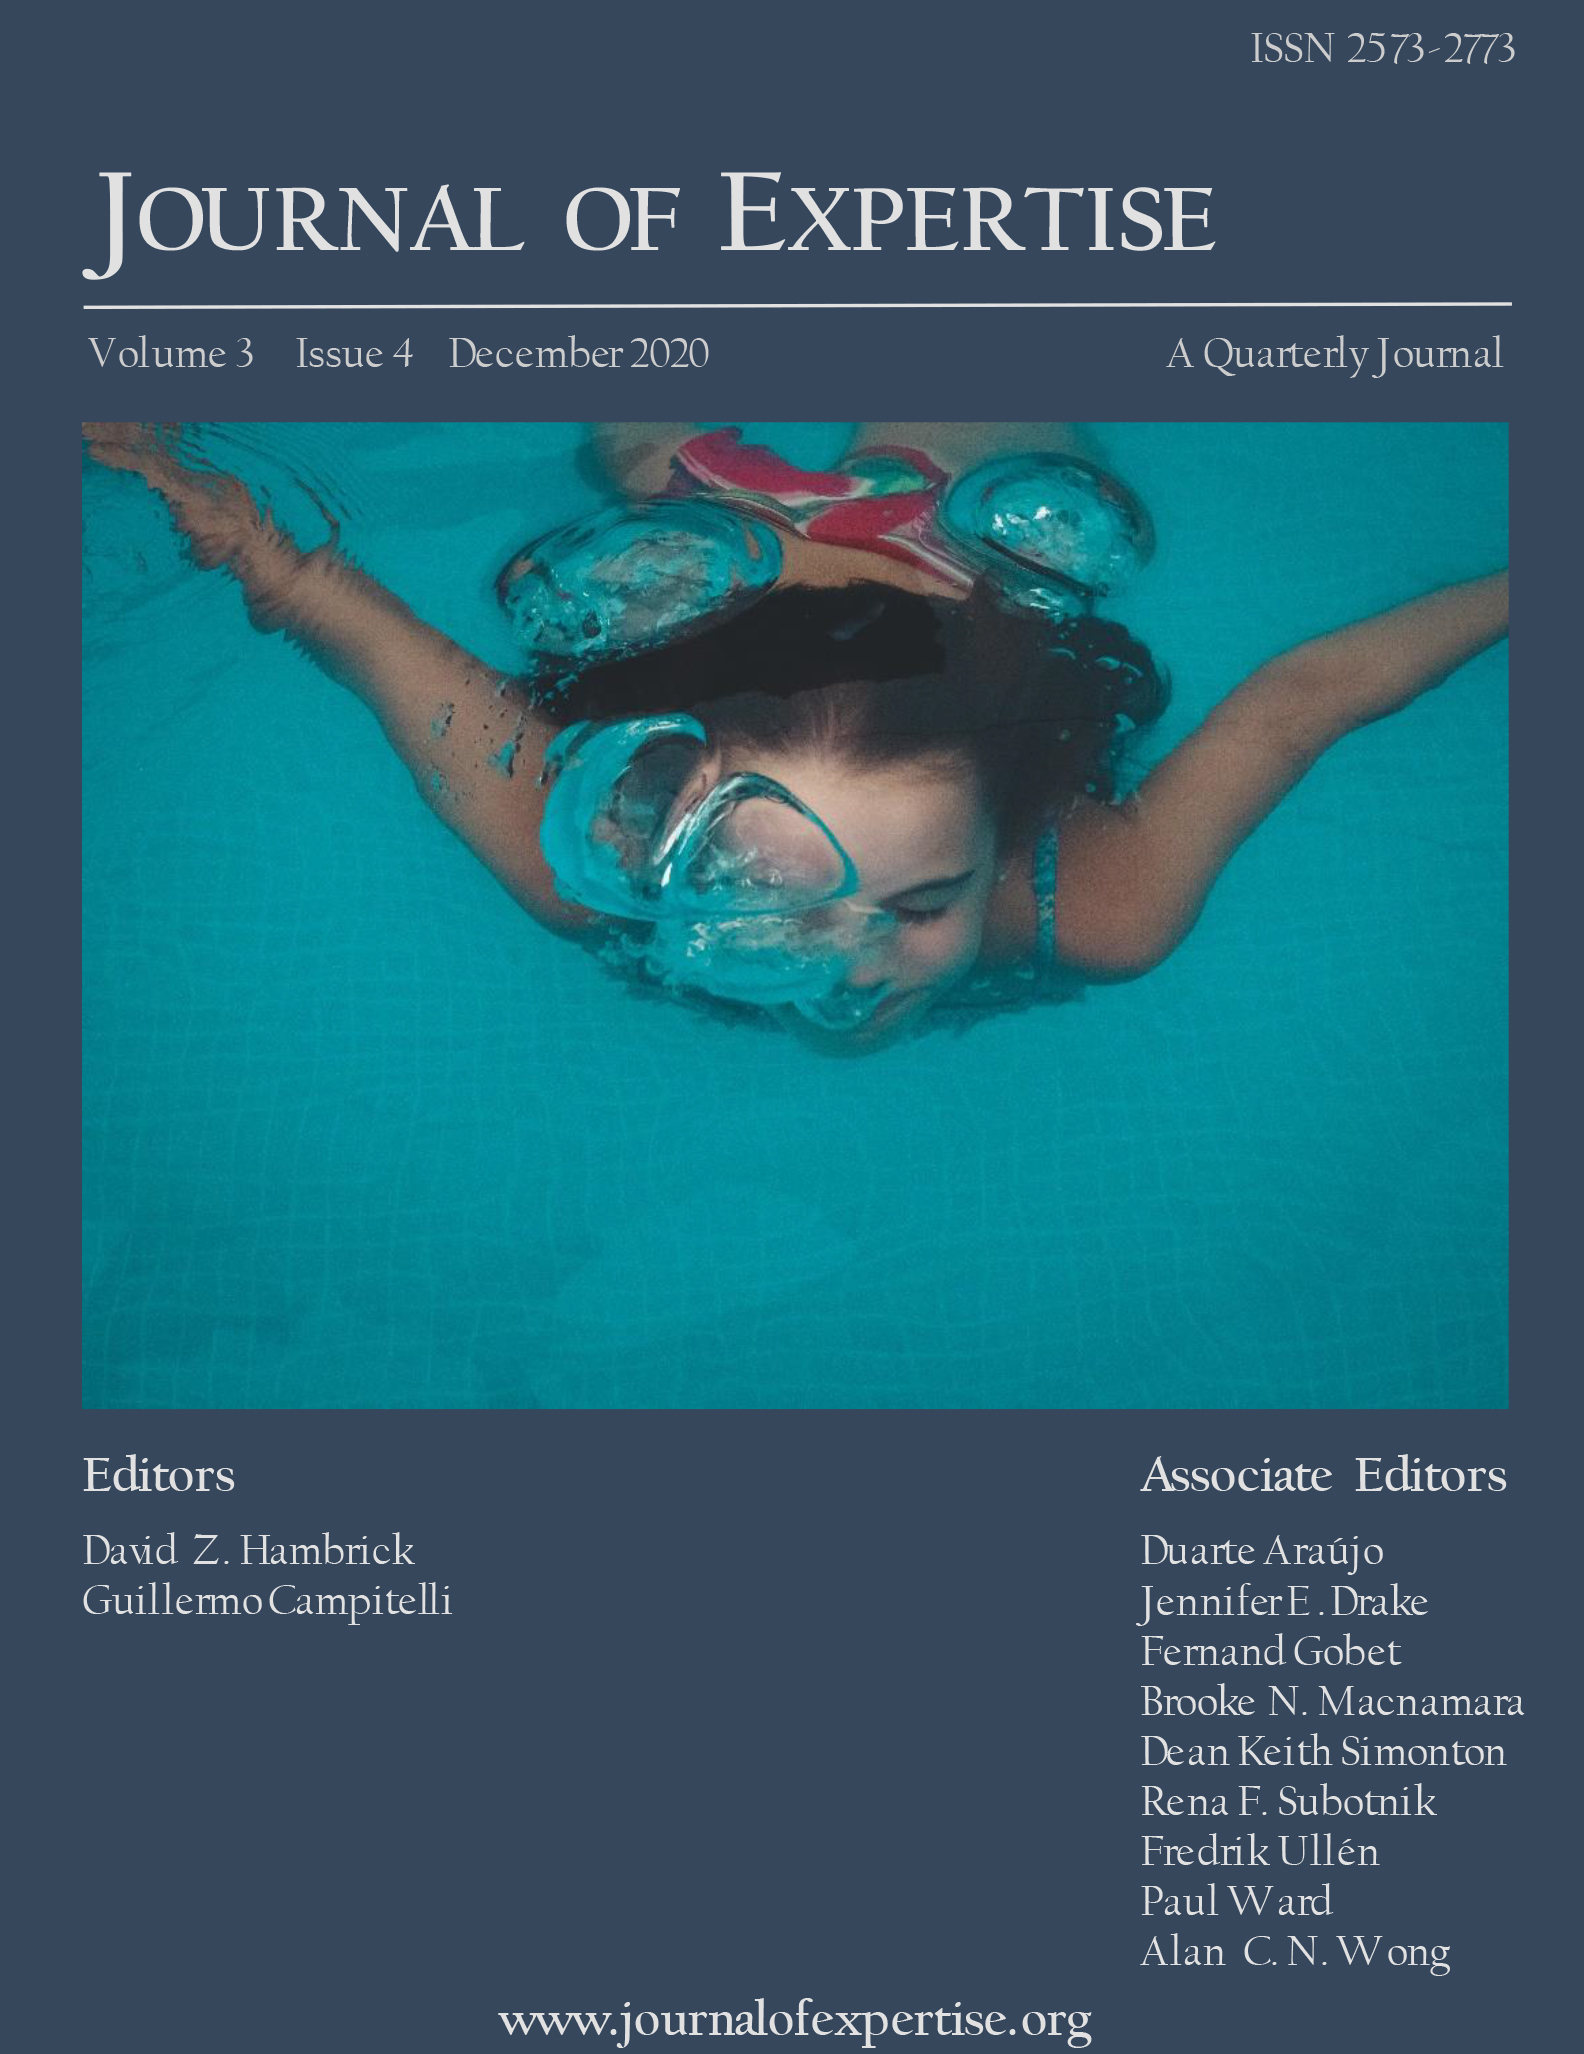 Journal of Expertise Volume 3 Issue 4